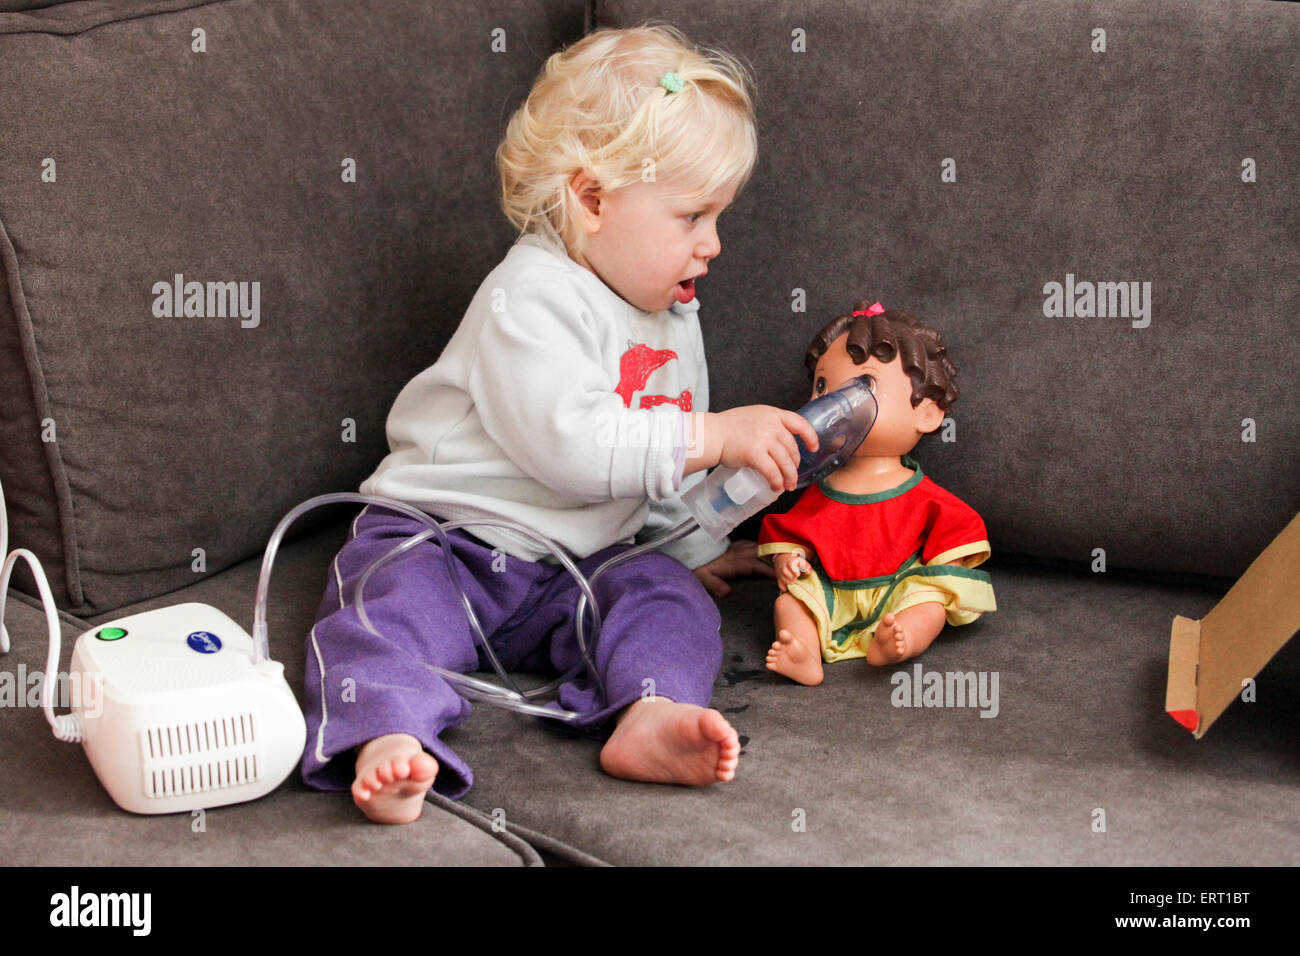 Baby uses her inhalation mask to treat her doll - Stock Image